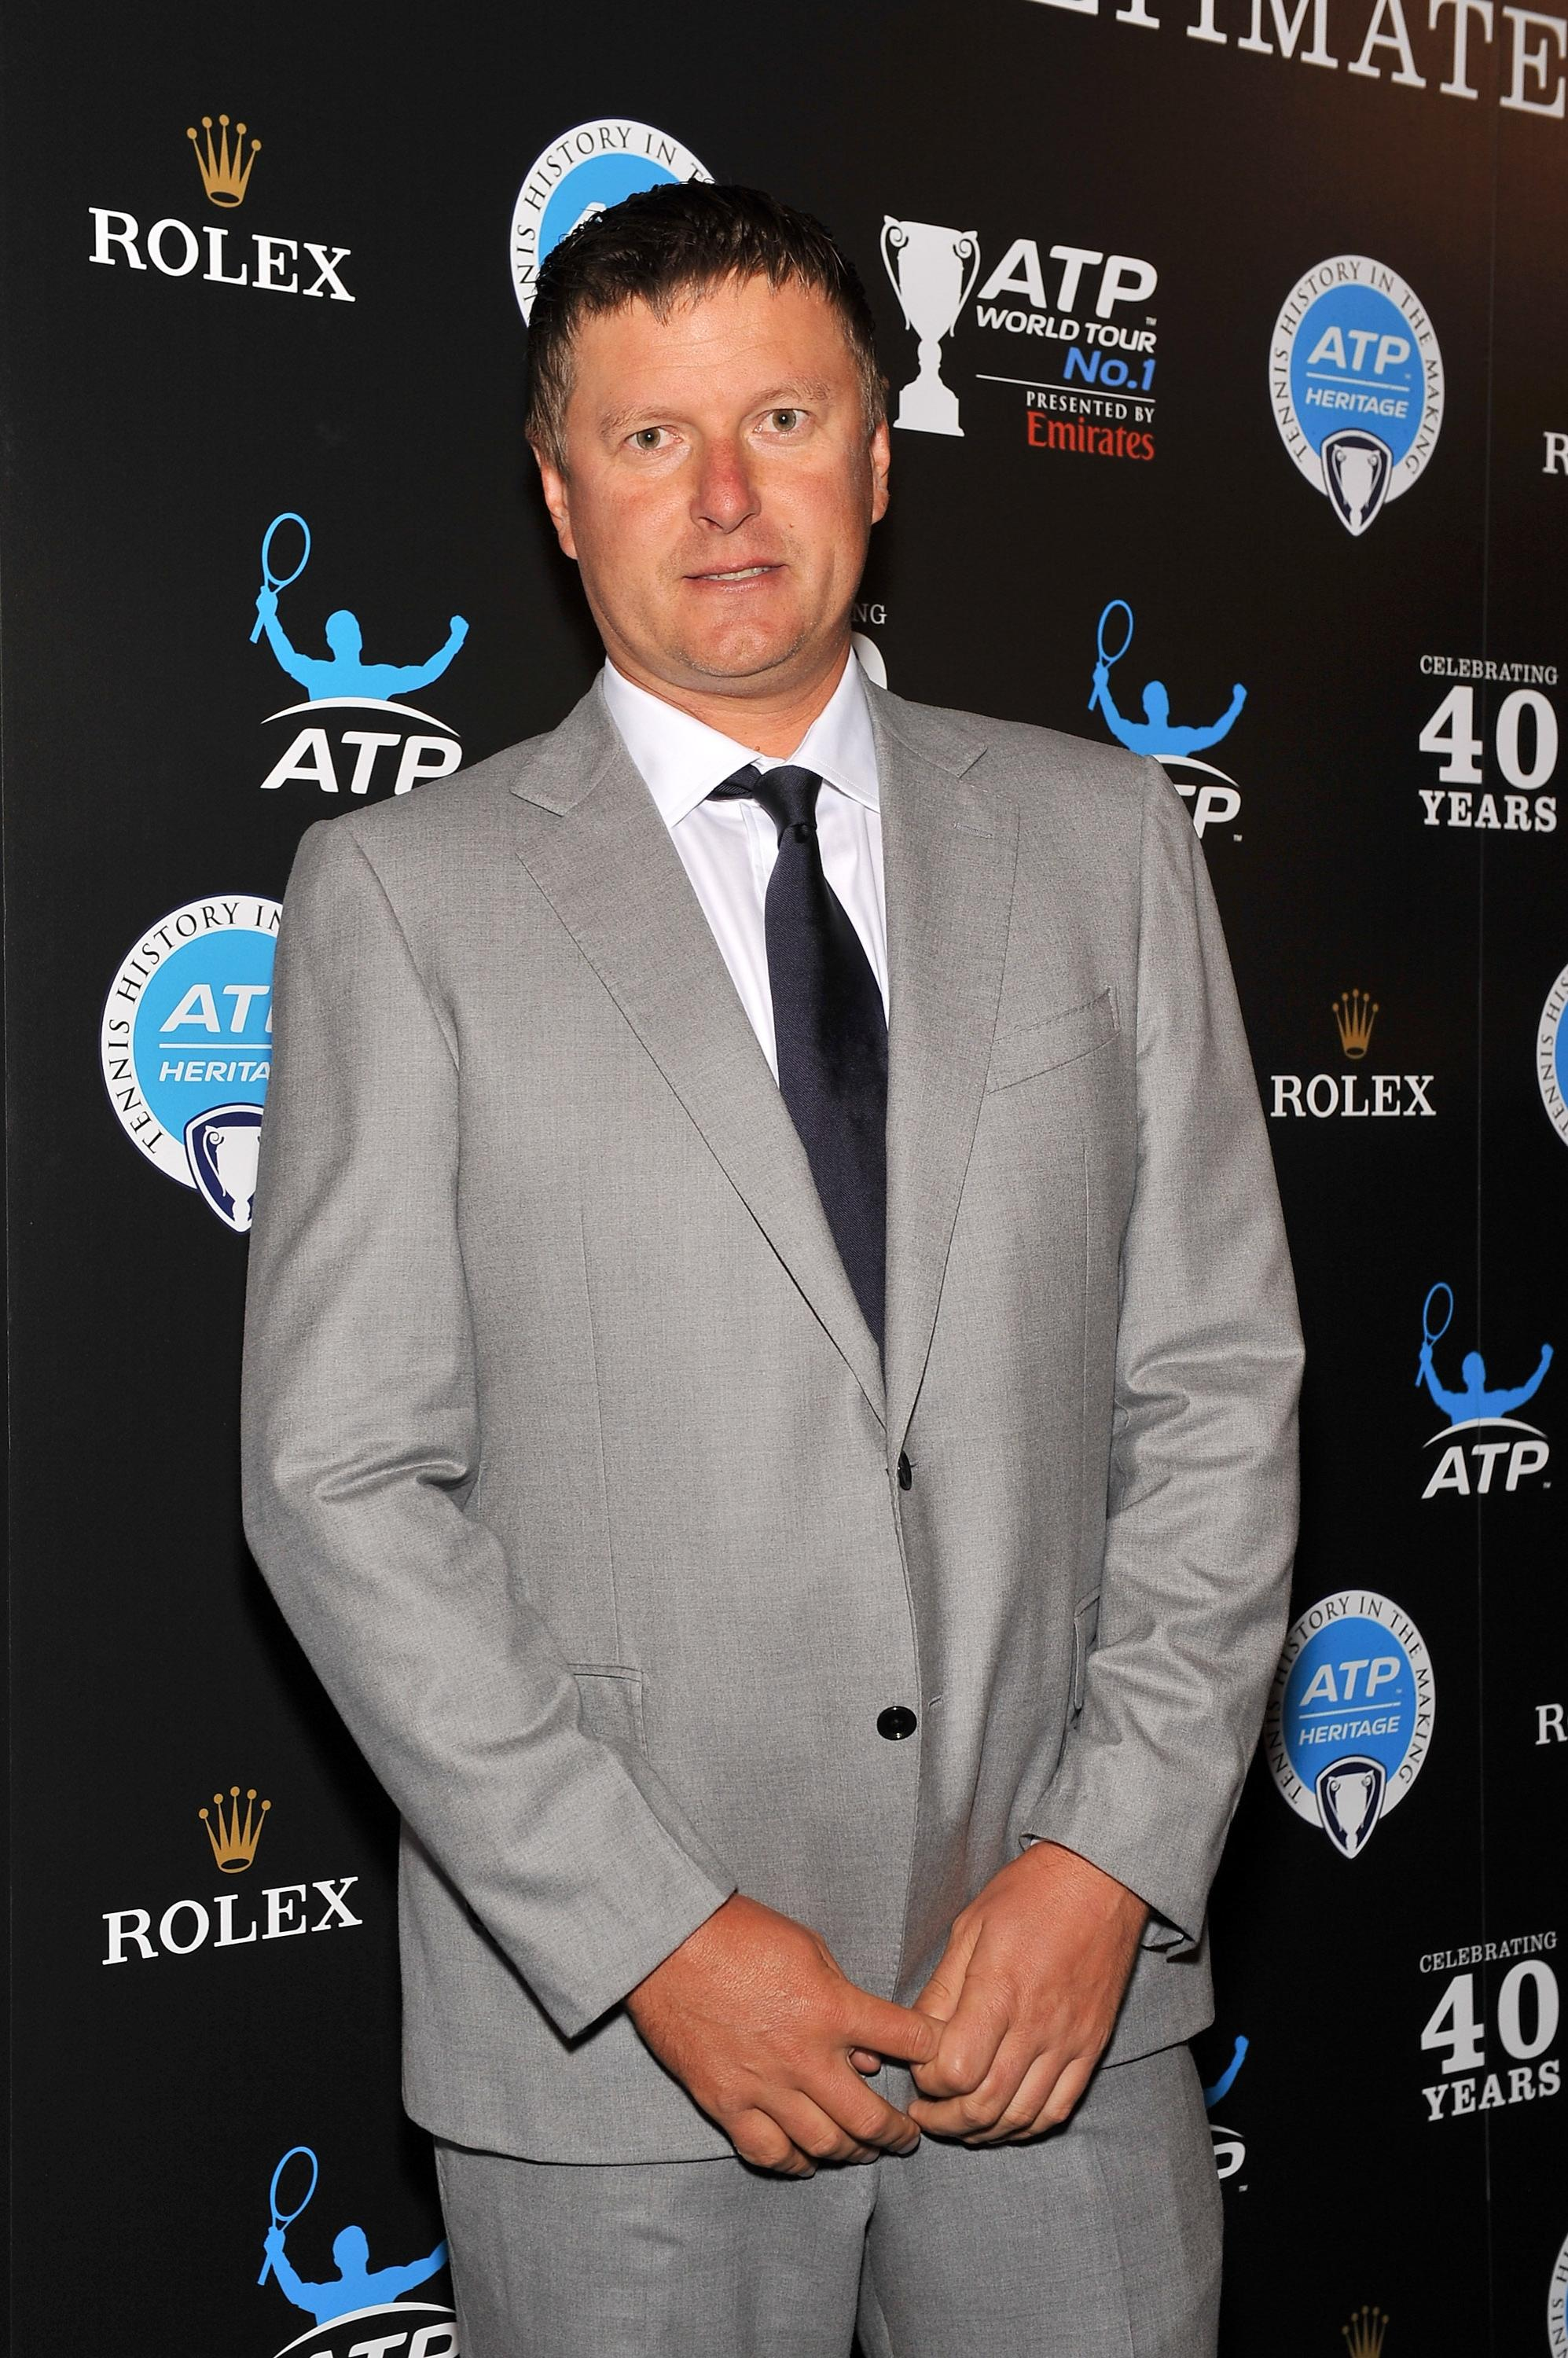 Yevgeny Kafelnikov ignores the first rule of Hall of Fame